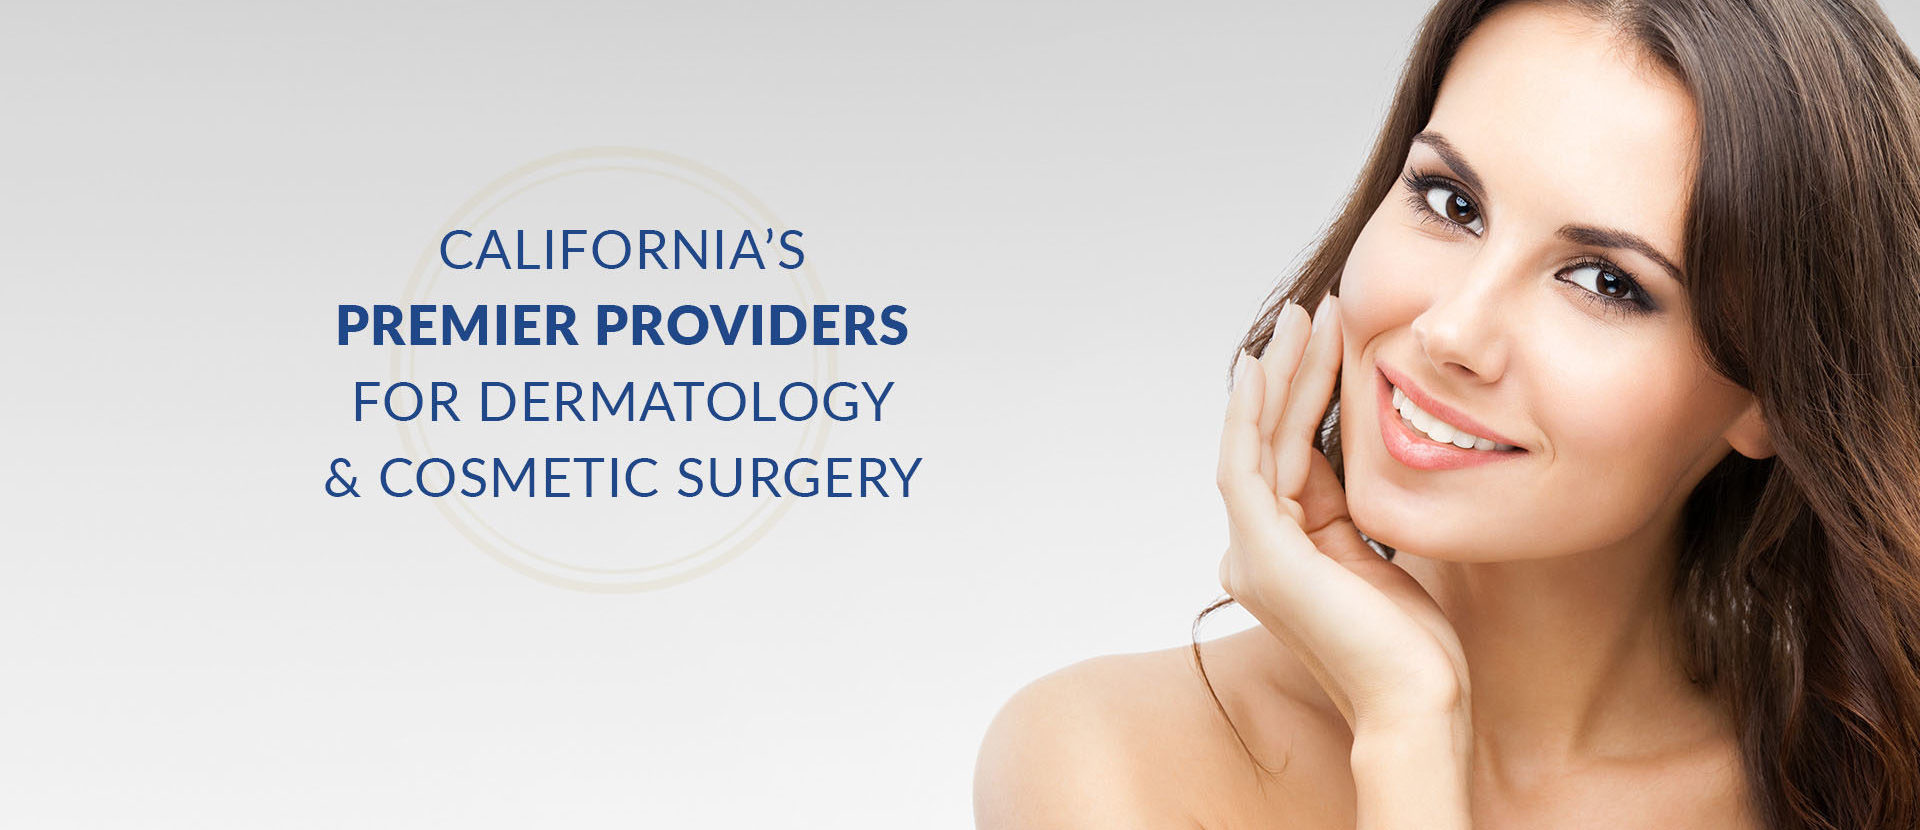 Highest Quality Care at an Affordable Price